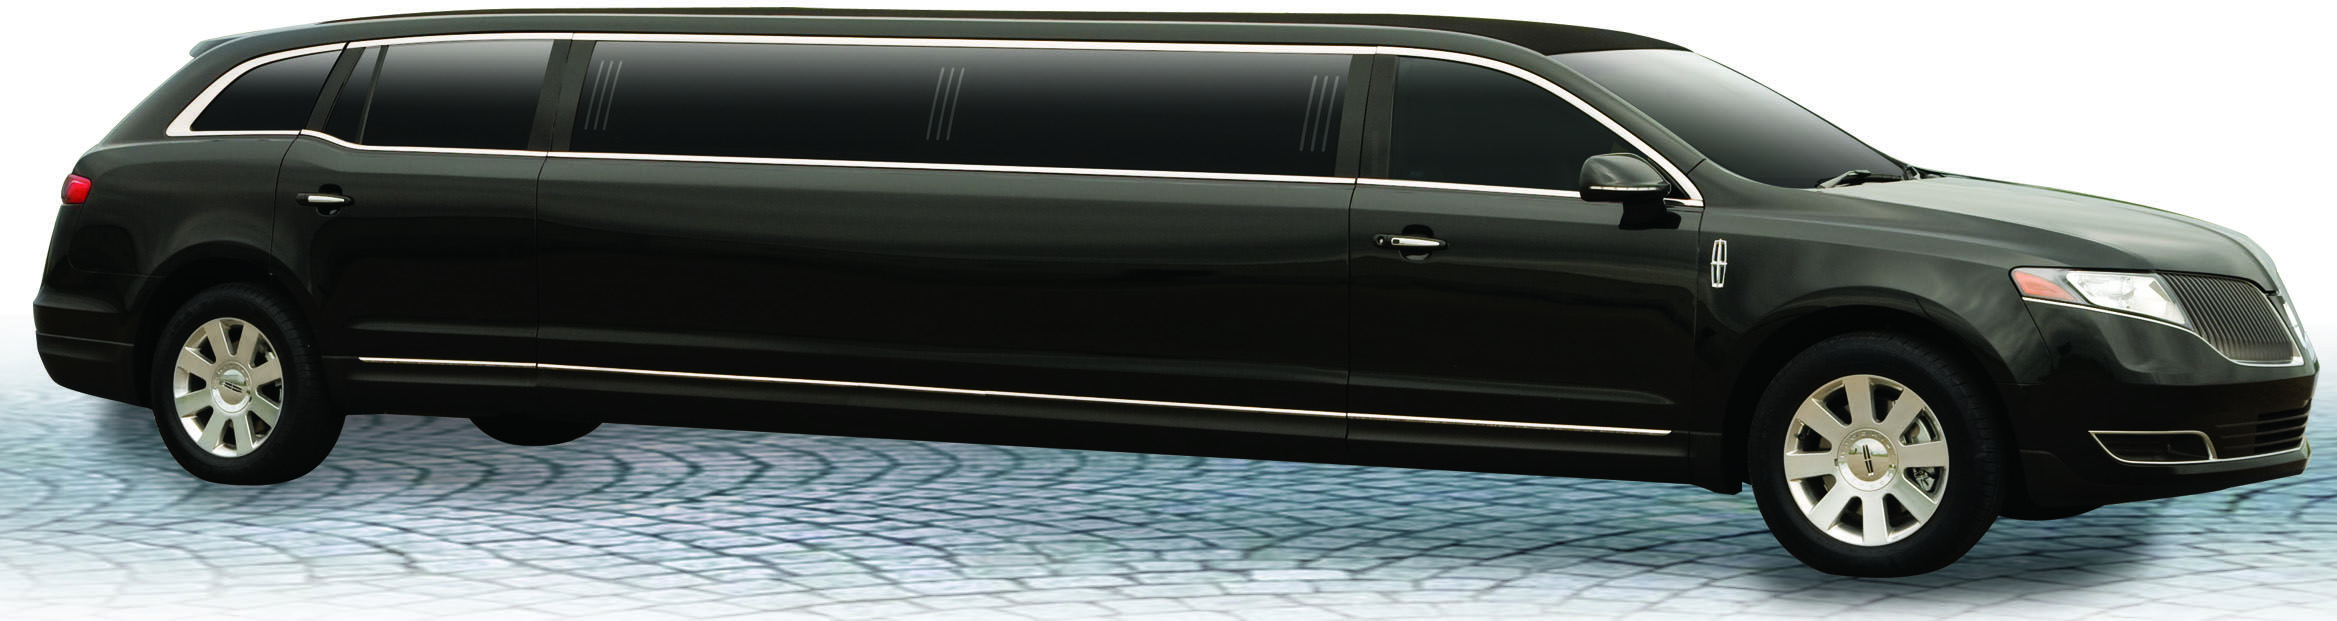 Washington Limousine Rental is the best way to organize a large group of travelers, we have the best and affordable price rates. :-  #Washington_DC_Limo_Services #Washington_DC_Rent_A_Limo #Washington_DC_Limo_Rentals